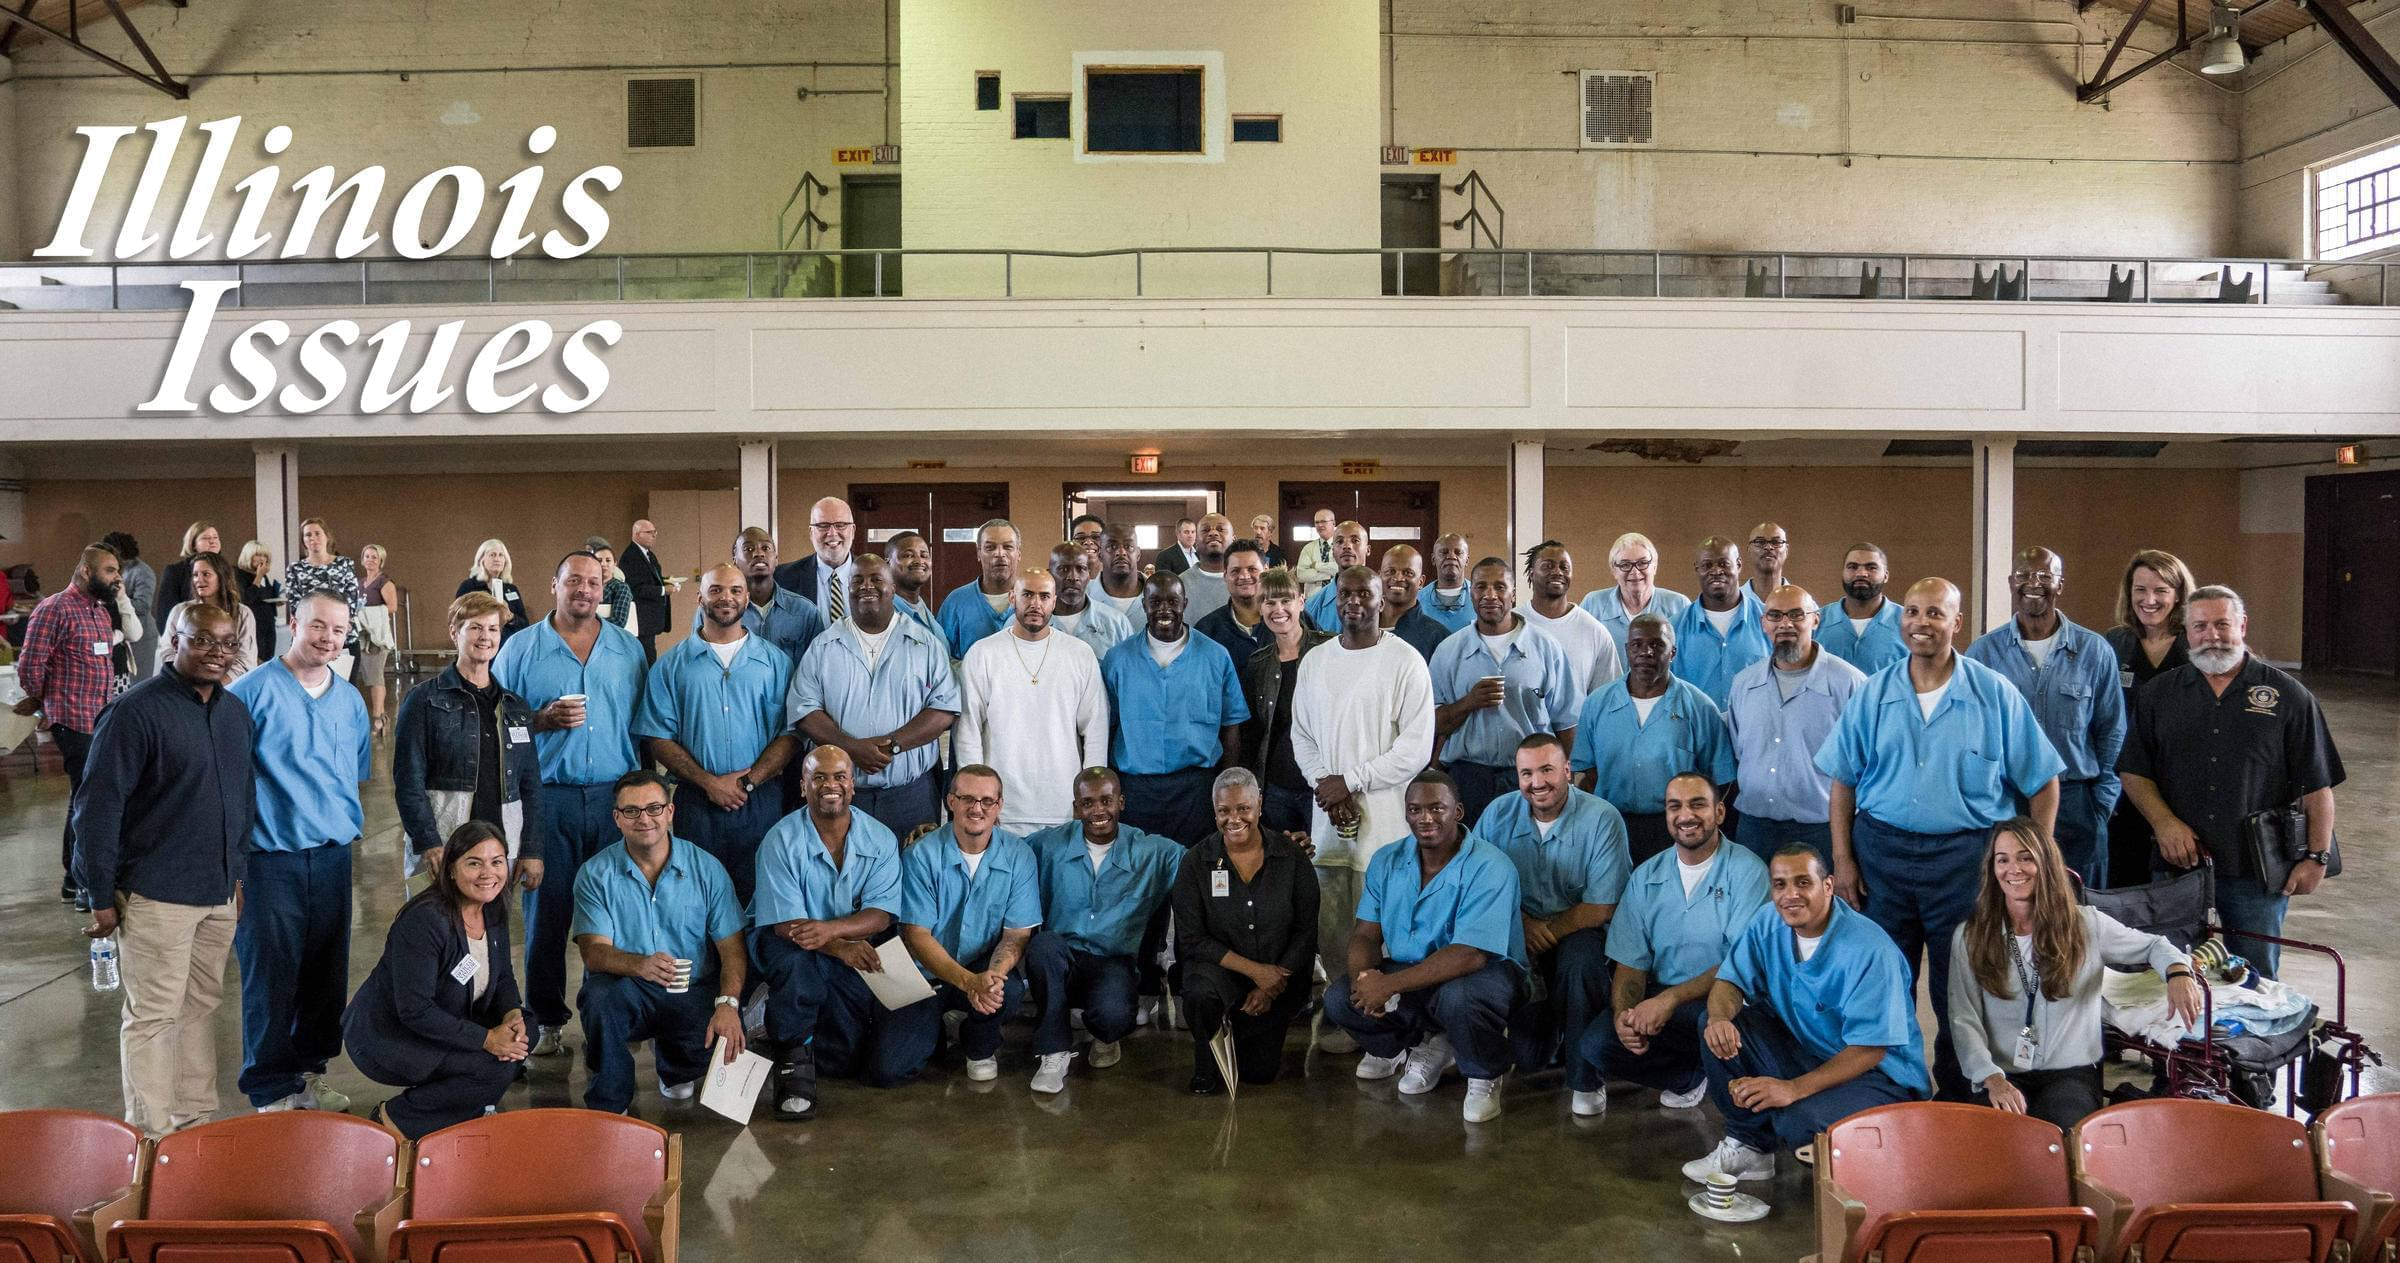 Students, teachers, staff and volunteers posed for a picture after a convocation ceremony for the fall semester of a masters degree program at Stateville Correctional Center.